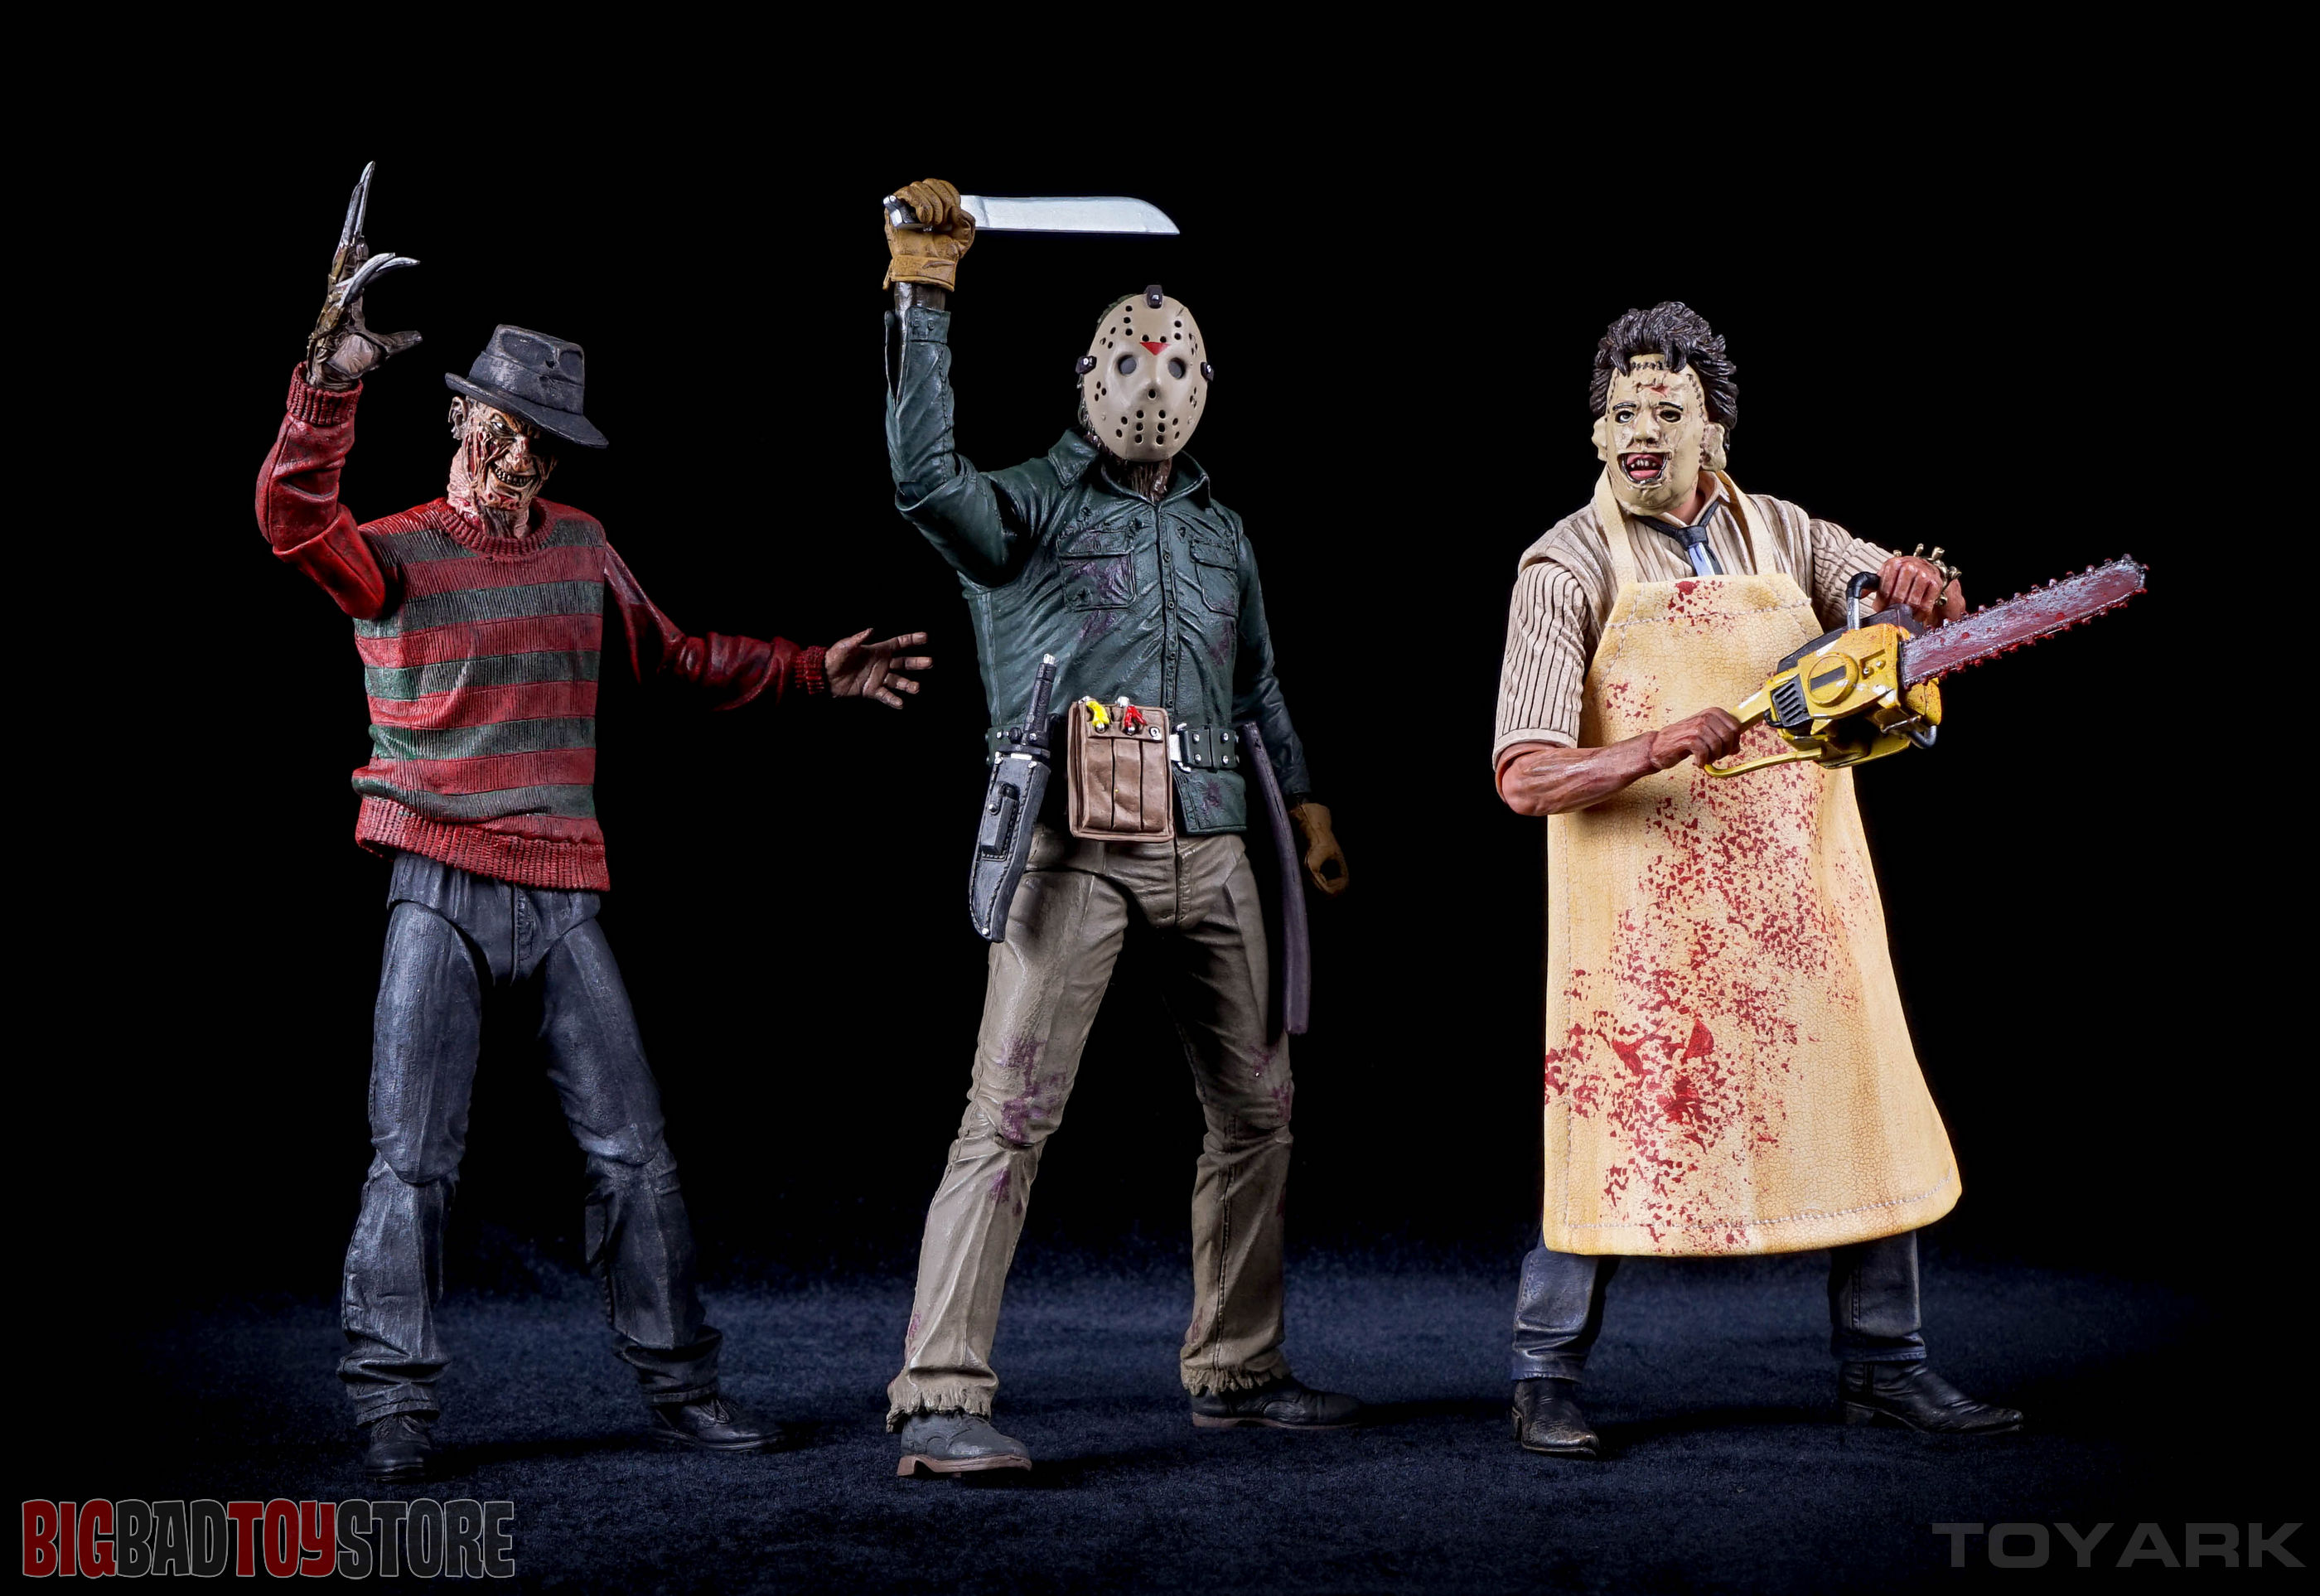 http://news.toyark.com/wp-content/uploads/sites/4/2016/01/NECA-Part-6-Ultimate-Jason-064.jpg